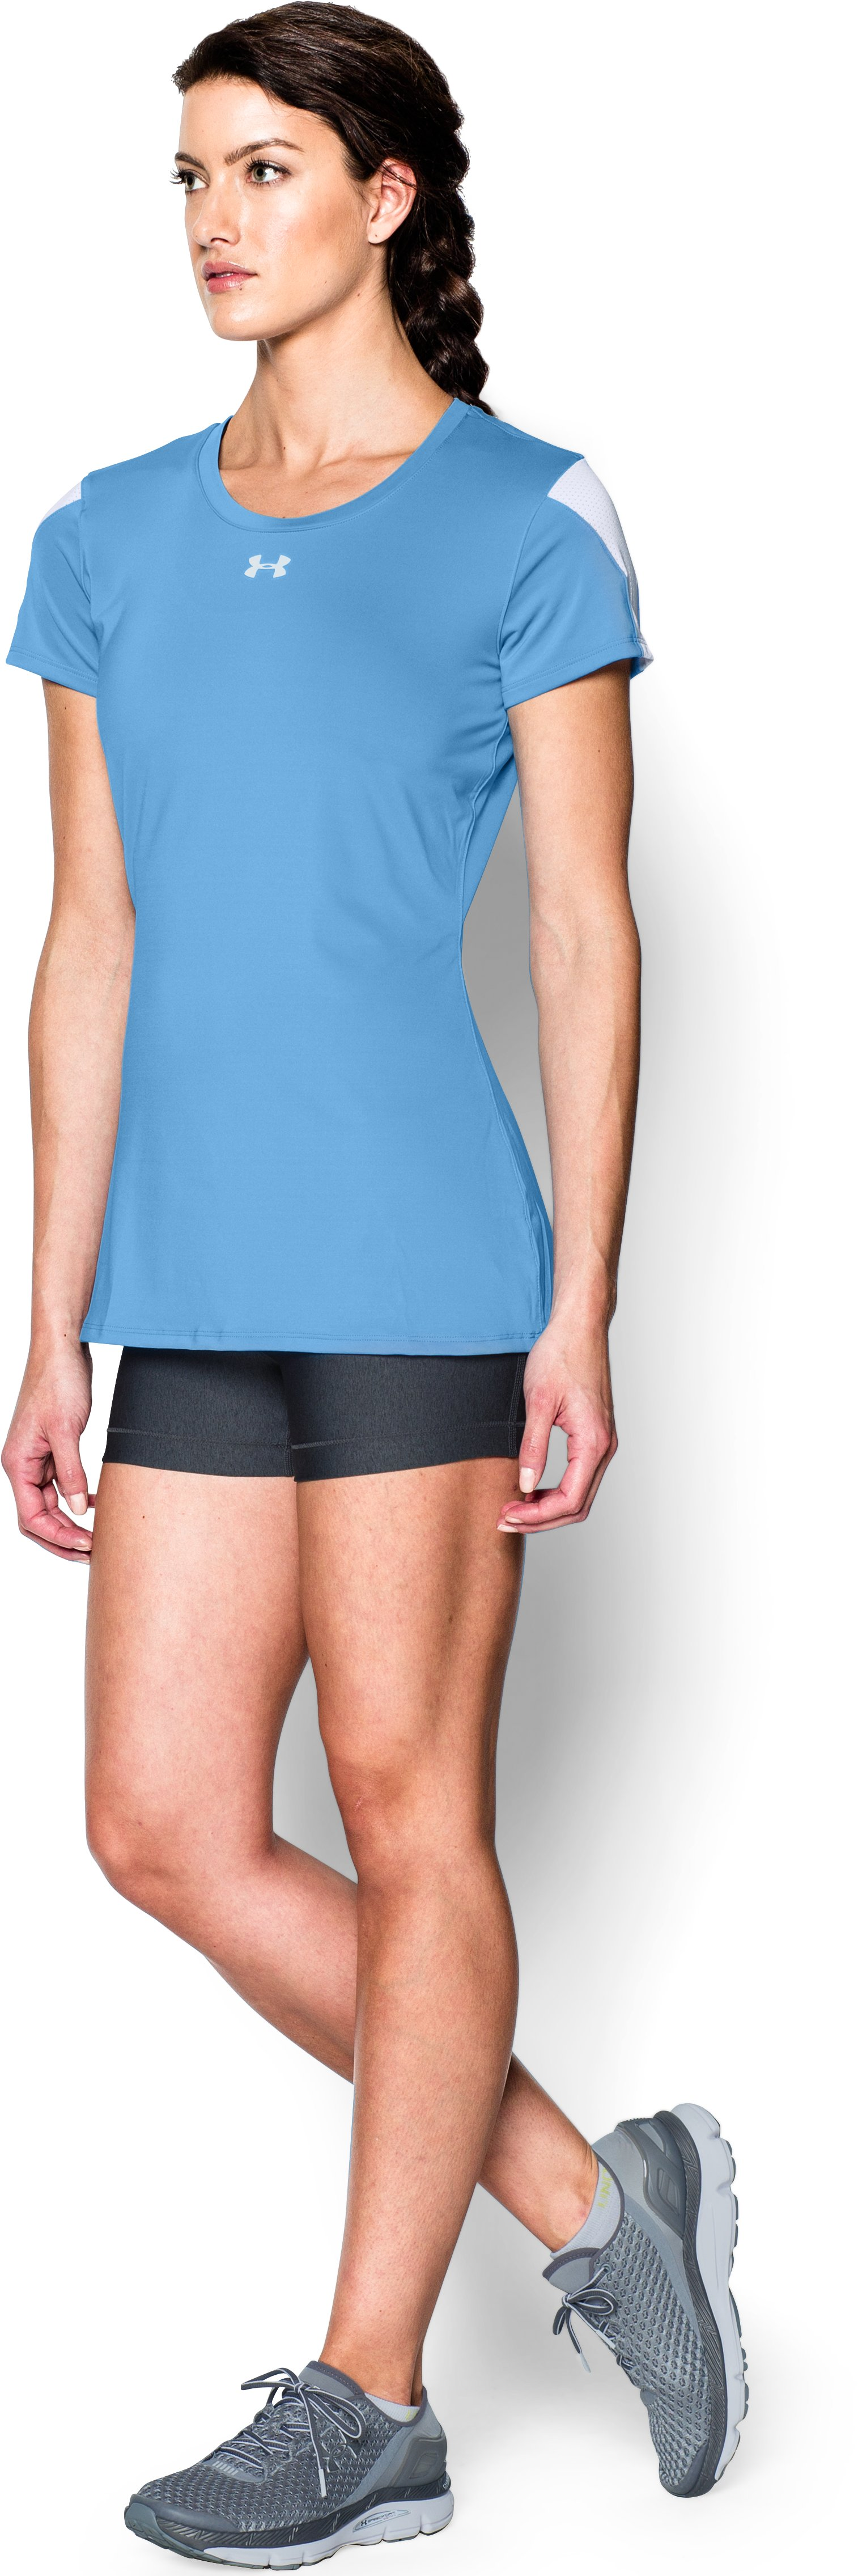 Women's UA Block Party Short Sleeve Jersey, Carolina Blue, undefined